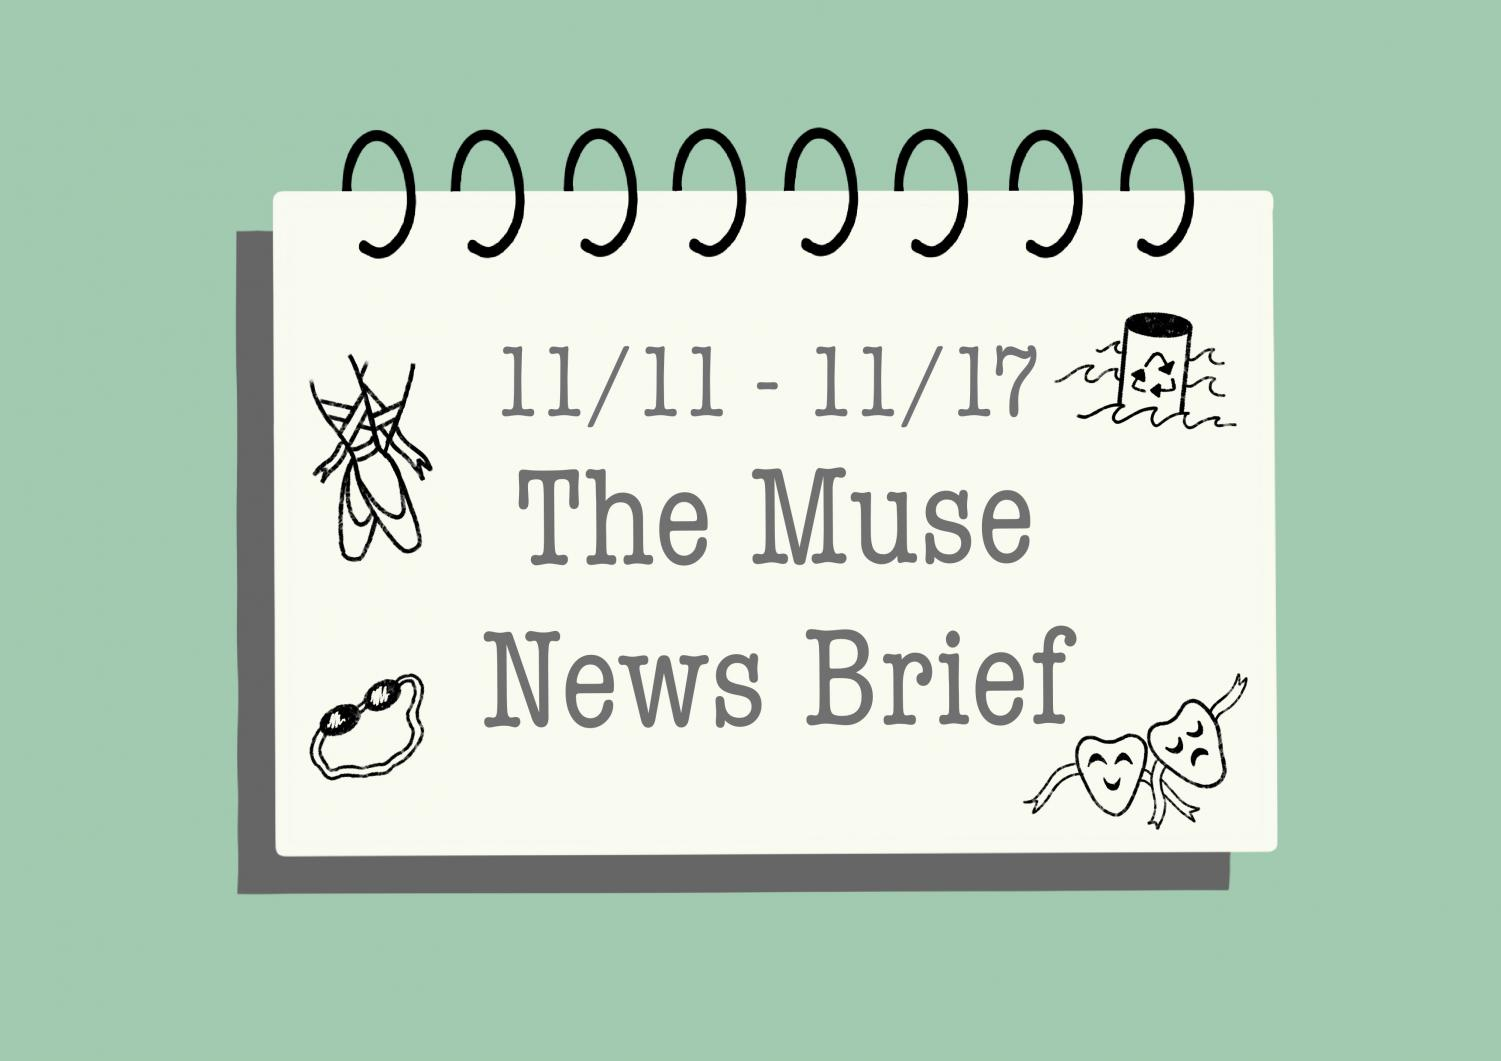 Here are some of the biggest events and news stories that took place the week of Nov. 11–17.